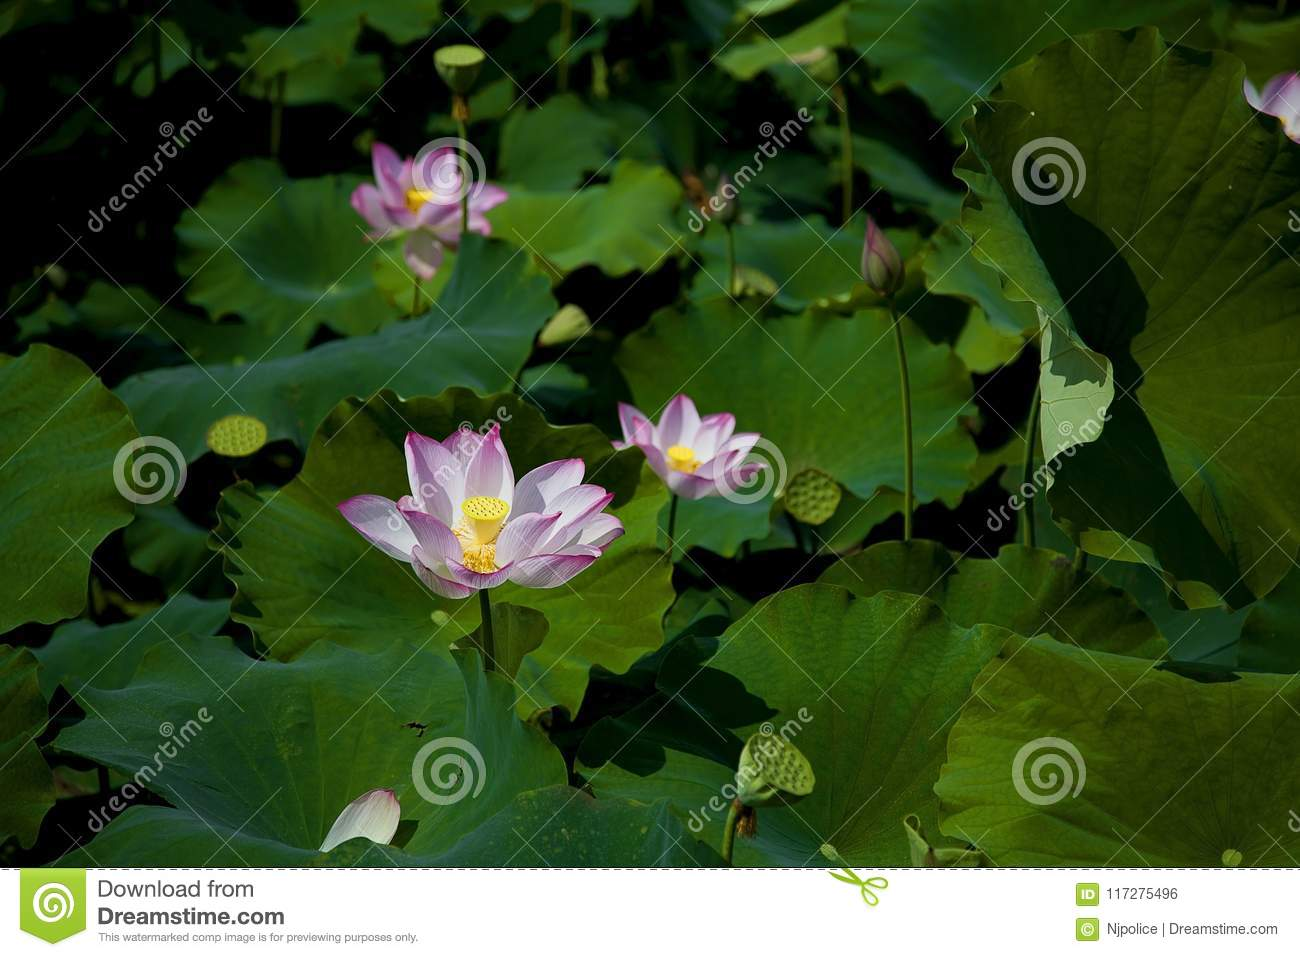 Blooming Lotus Flower Stock Photo Image Of Mild Pure 117275496